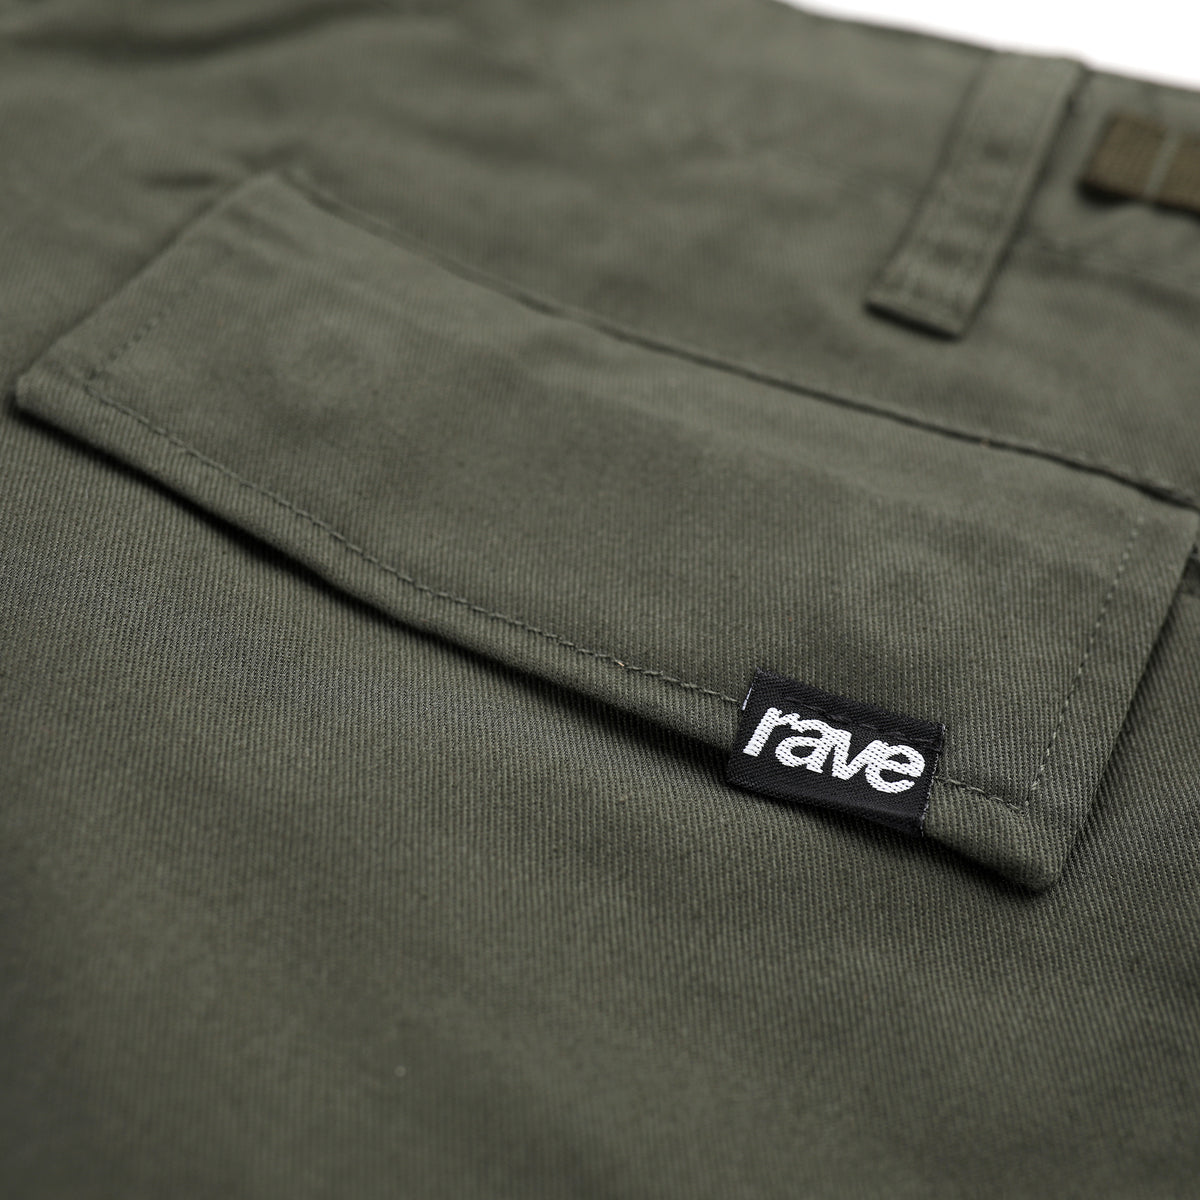 SUMMIT olive cargo short - RAVE skateboards